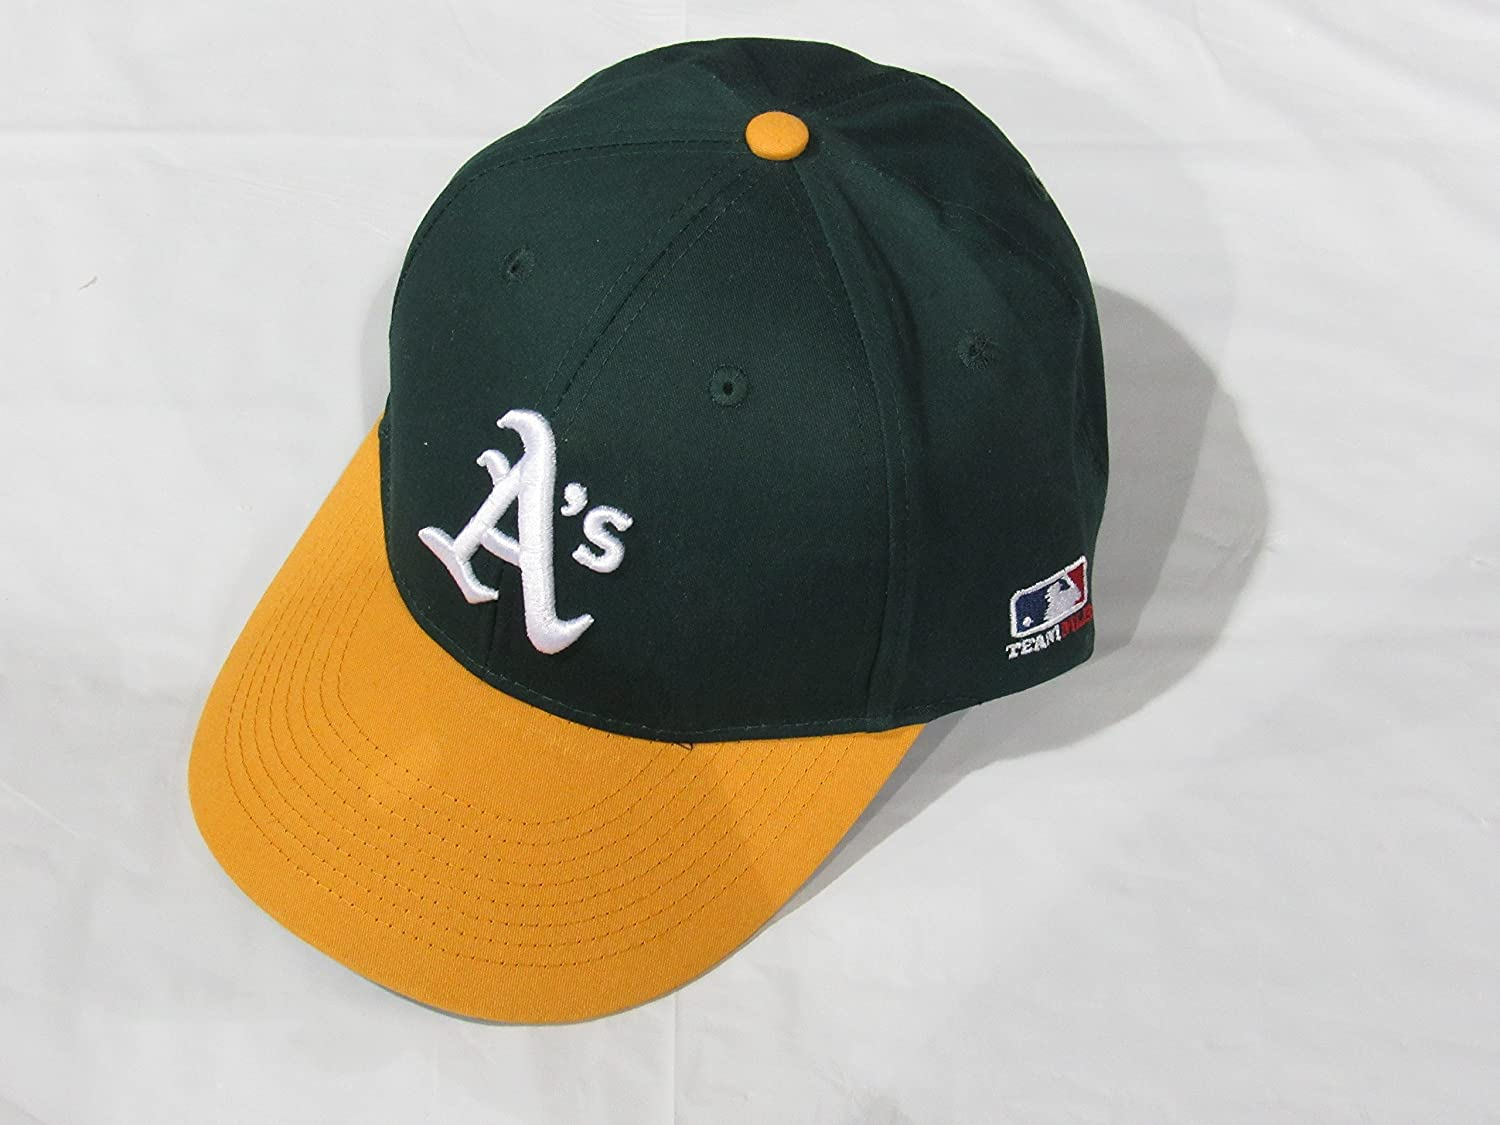 wholesale best service classic fit Amazon.com : Oakland Athletics/A's (Home - Green/Yellow) ADULT ...